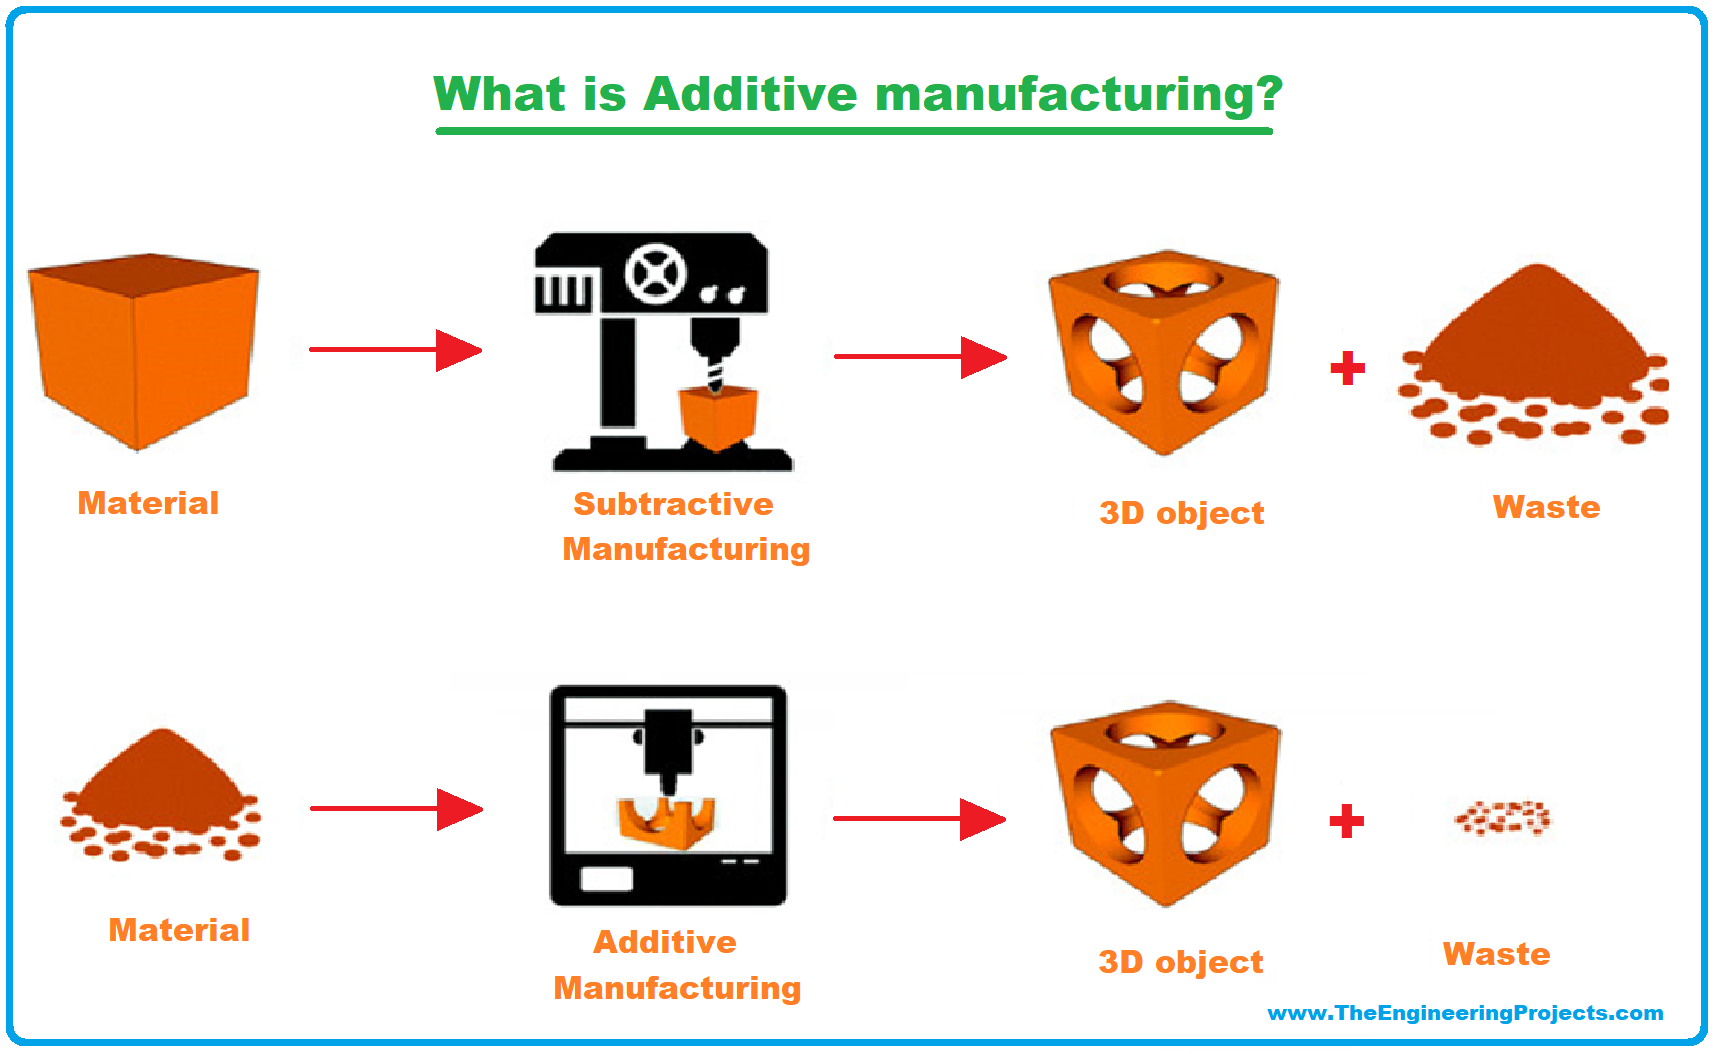 3D Printing, 3D Printer, 3D Printing definition, What is 3D Printing, Definition of 3D printing, 3D Printing Technology, Process of 3D printing, Applications of 3D Printing, 3D Printing examples, 3D Printing advantages, additive manufacturing